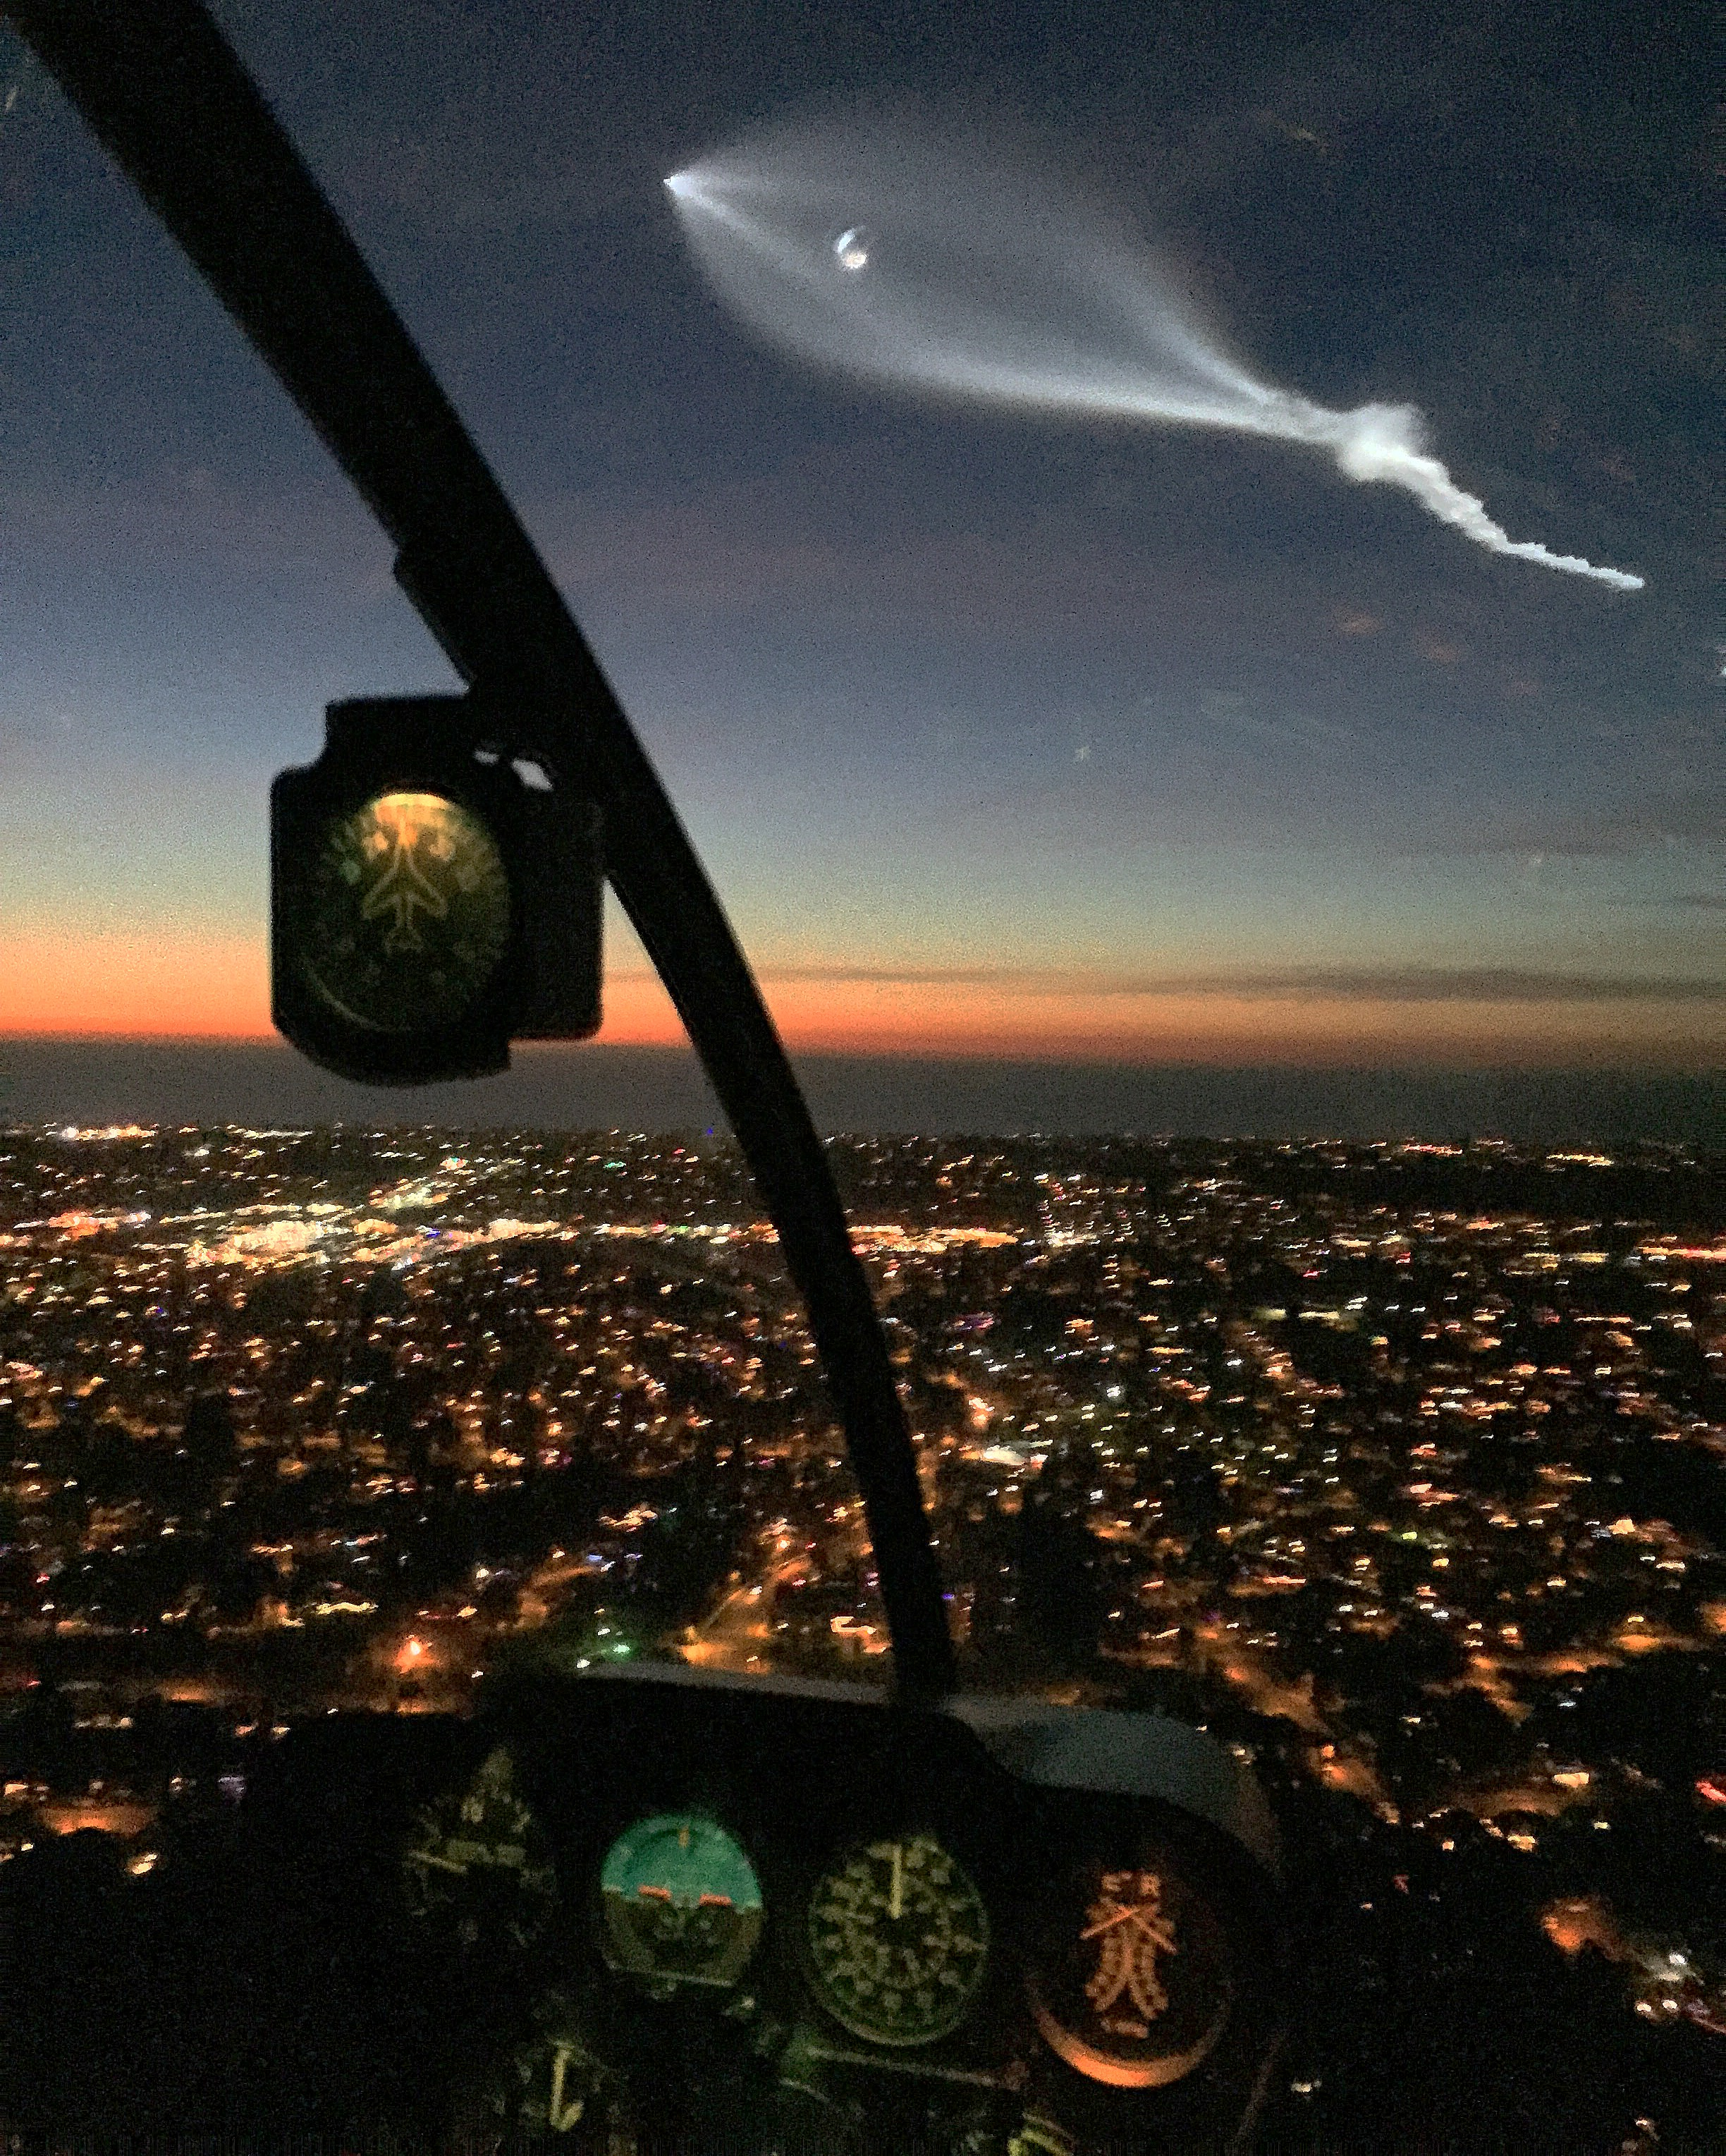 San Diego County Helicopter Tour - SpaceX Launch View From Waverider Helicopter Tours